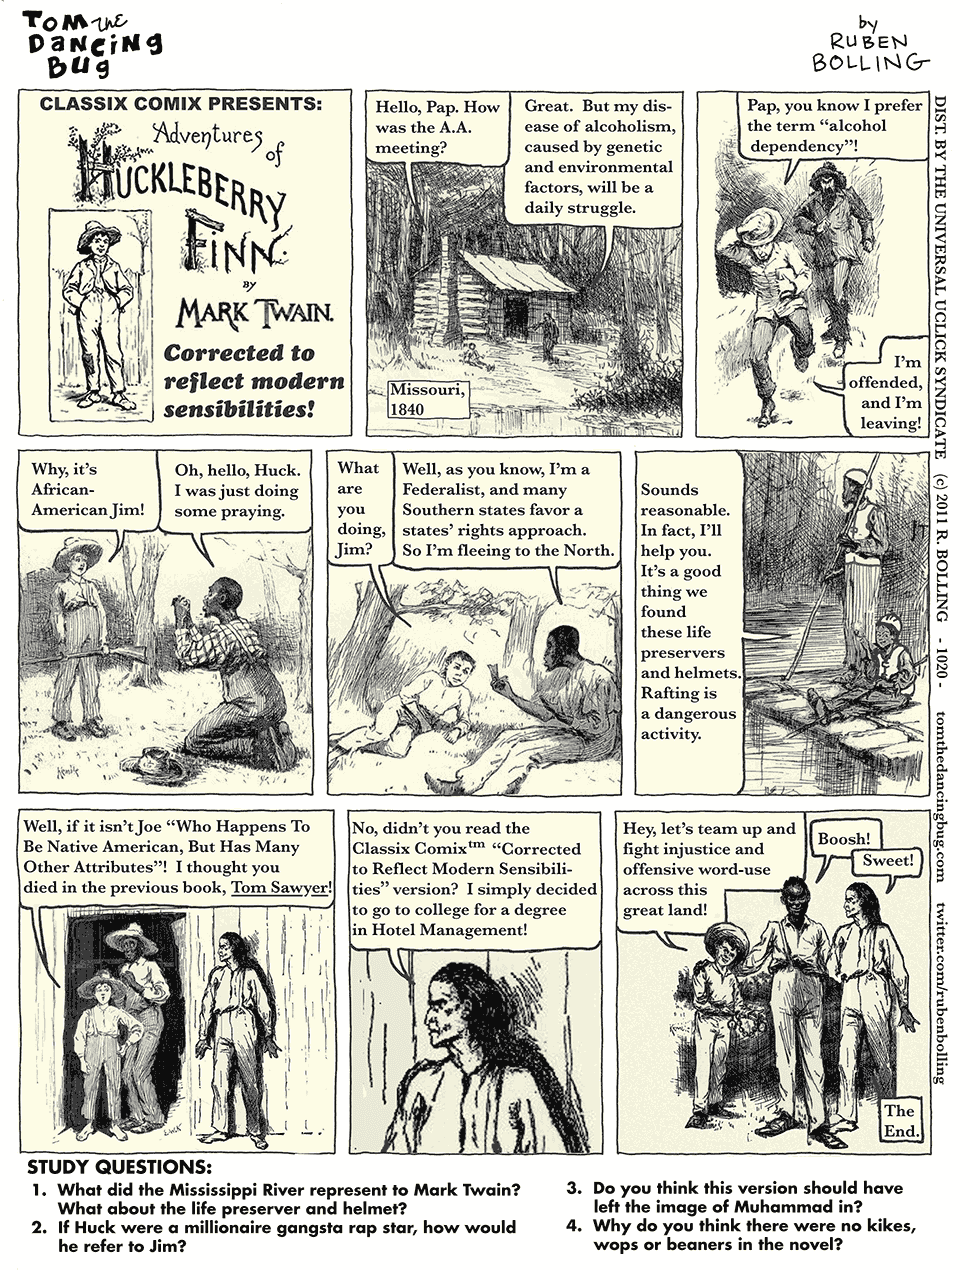 the story of huck finn in his hometown of hannibal missouri